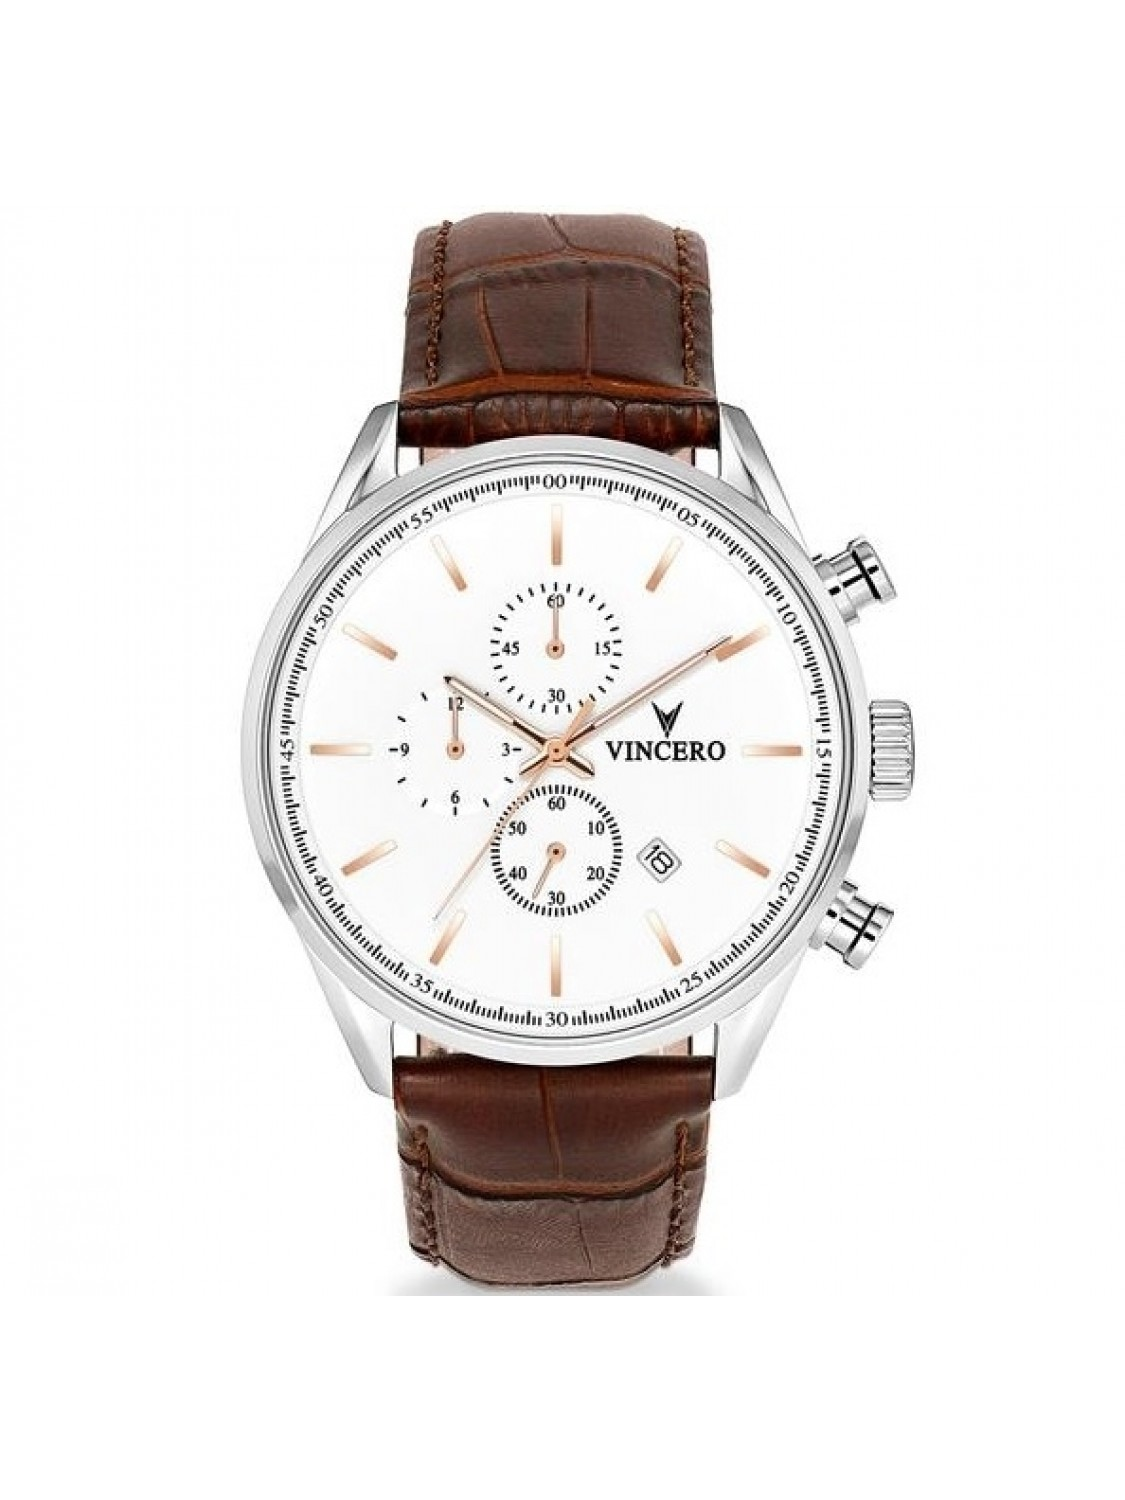 Vincero Chrono S White/Gold-39